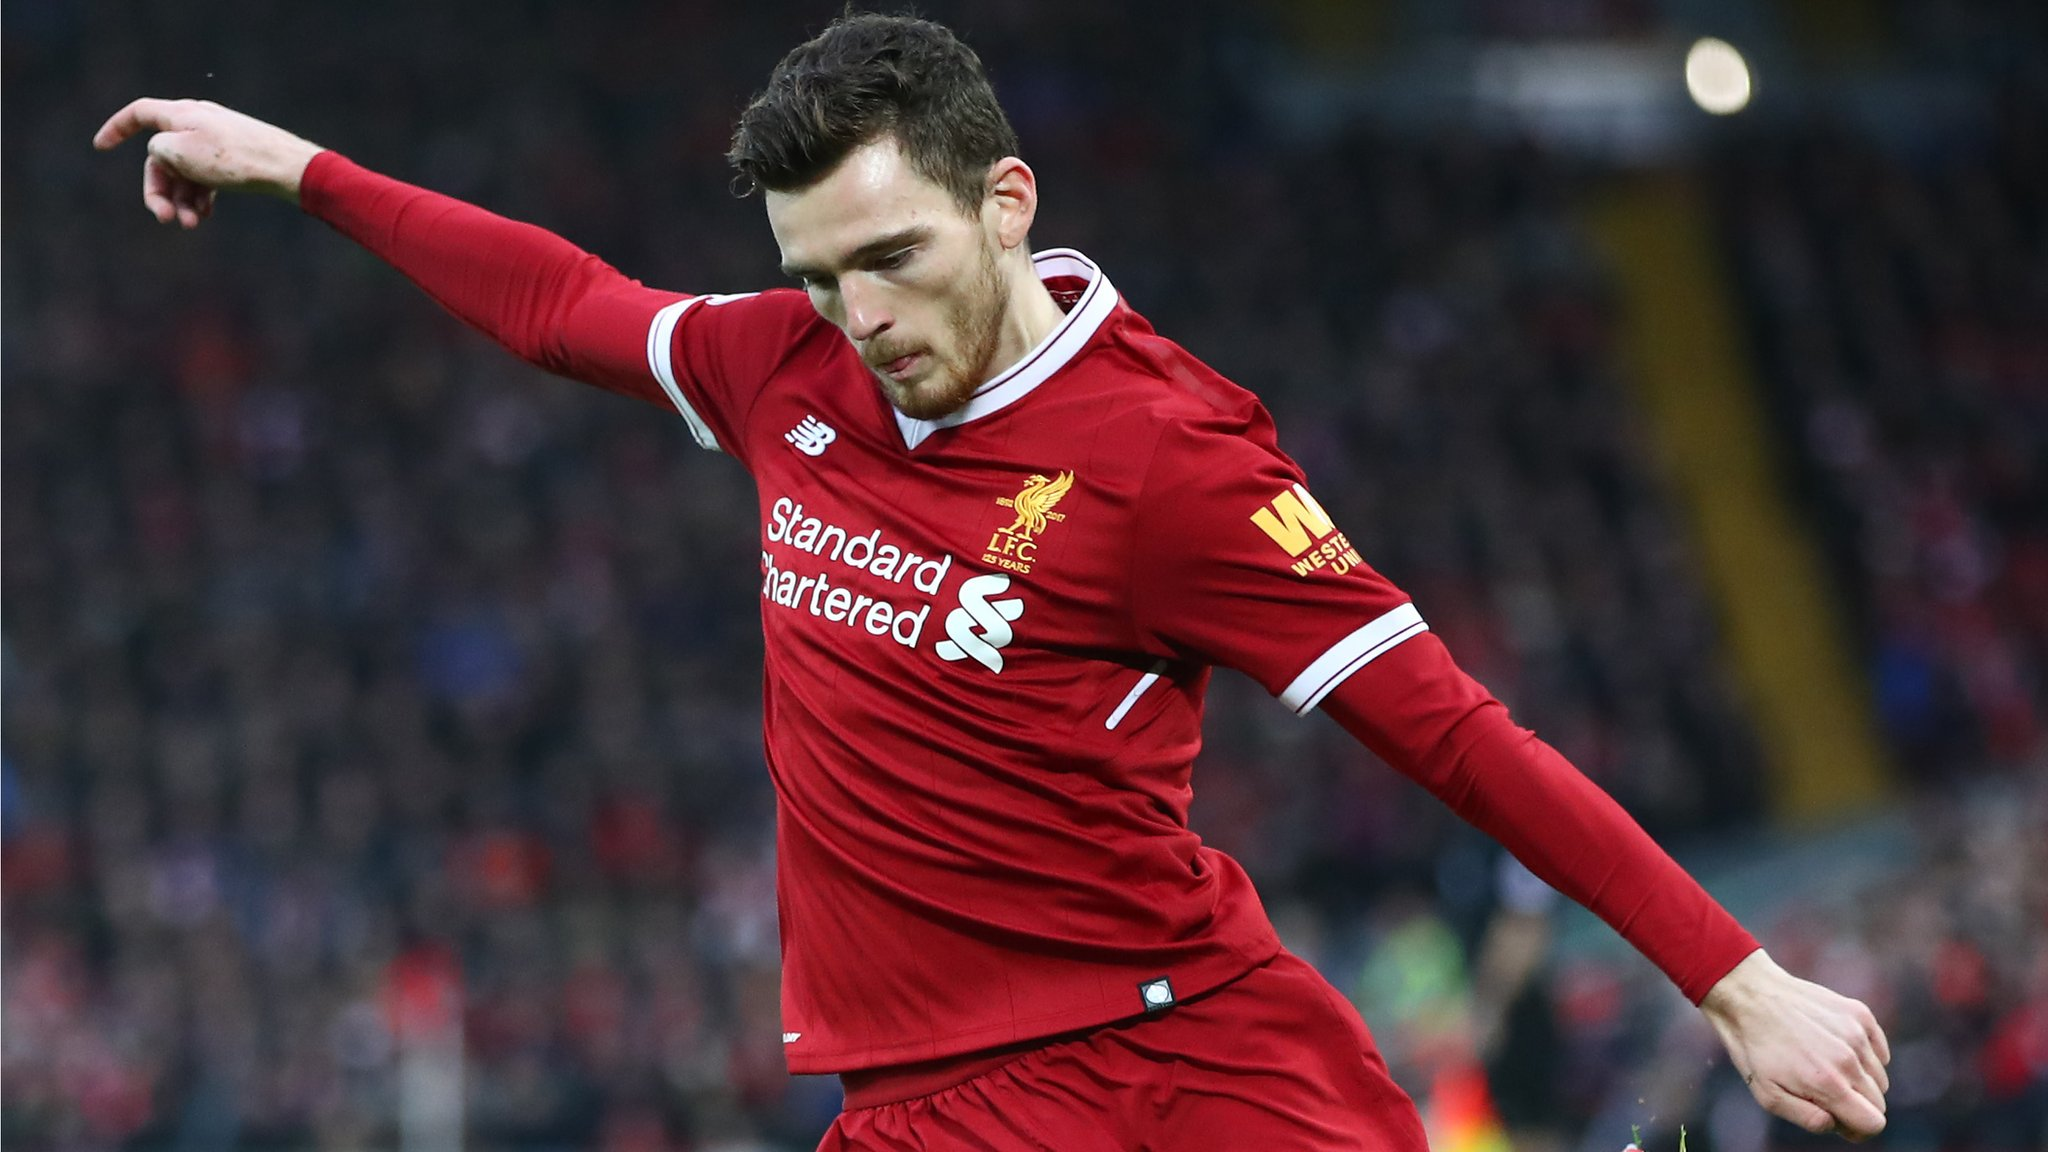 Robertson gifts Reds top to young fan - but not his own as 'no-one wants left-back's shirt'